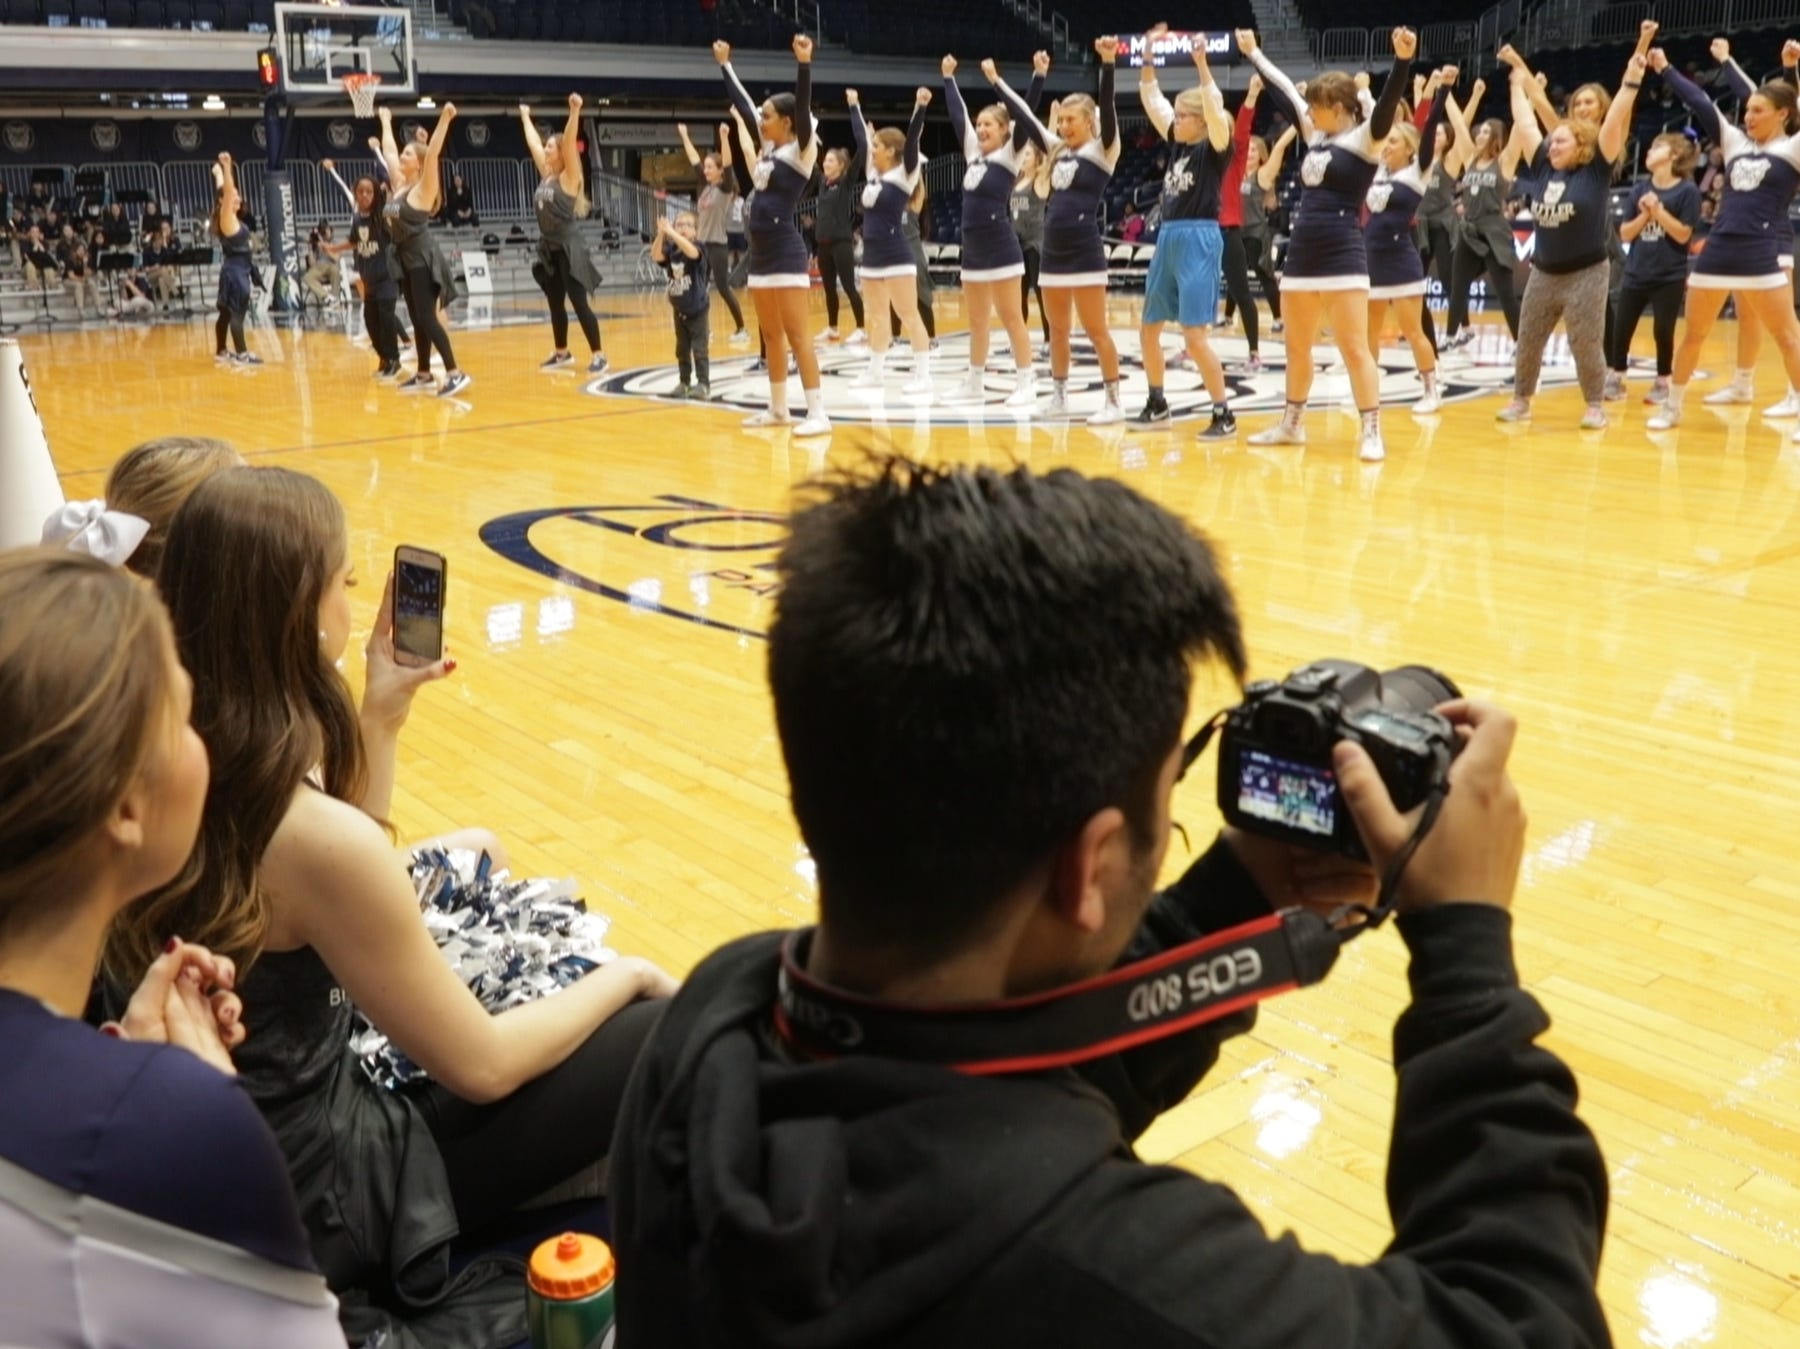 A special halftime performance during the Butler women's basketball game at Hinkle Fieldhouse, Indianapolis, Sunday, Dec. 2, 2018. Butler cheer and dance groups paired up with physical therapy students from Indiana University to teach young people with special needs a routine in preparation for a special performance during the afternoon's halftime show.